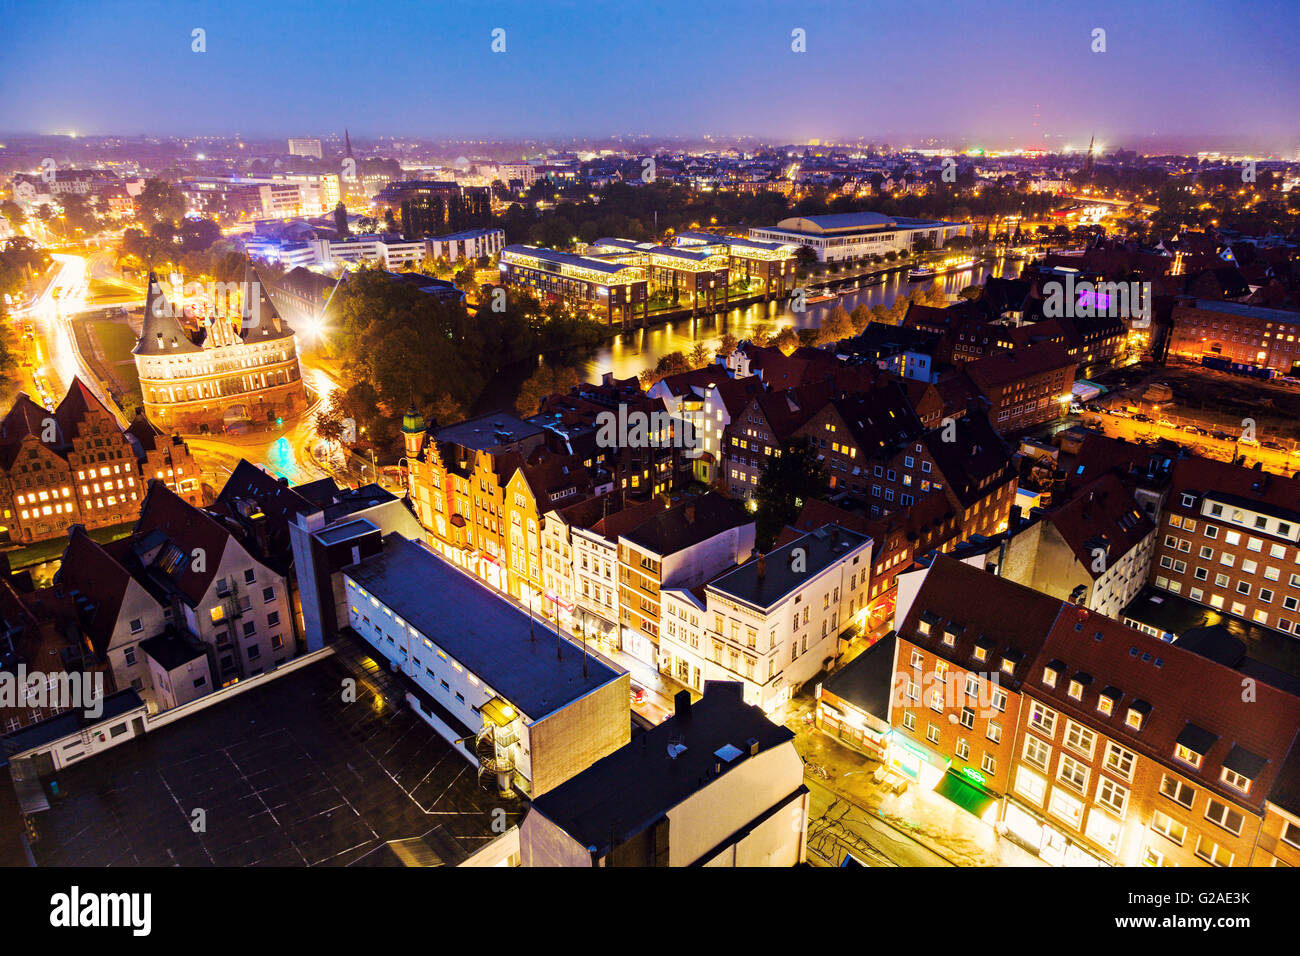 Aerial view of Lubeck Lubeck, Schleswig-Holstein, Germany - Stock Image